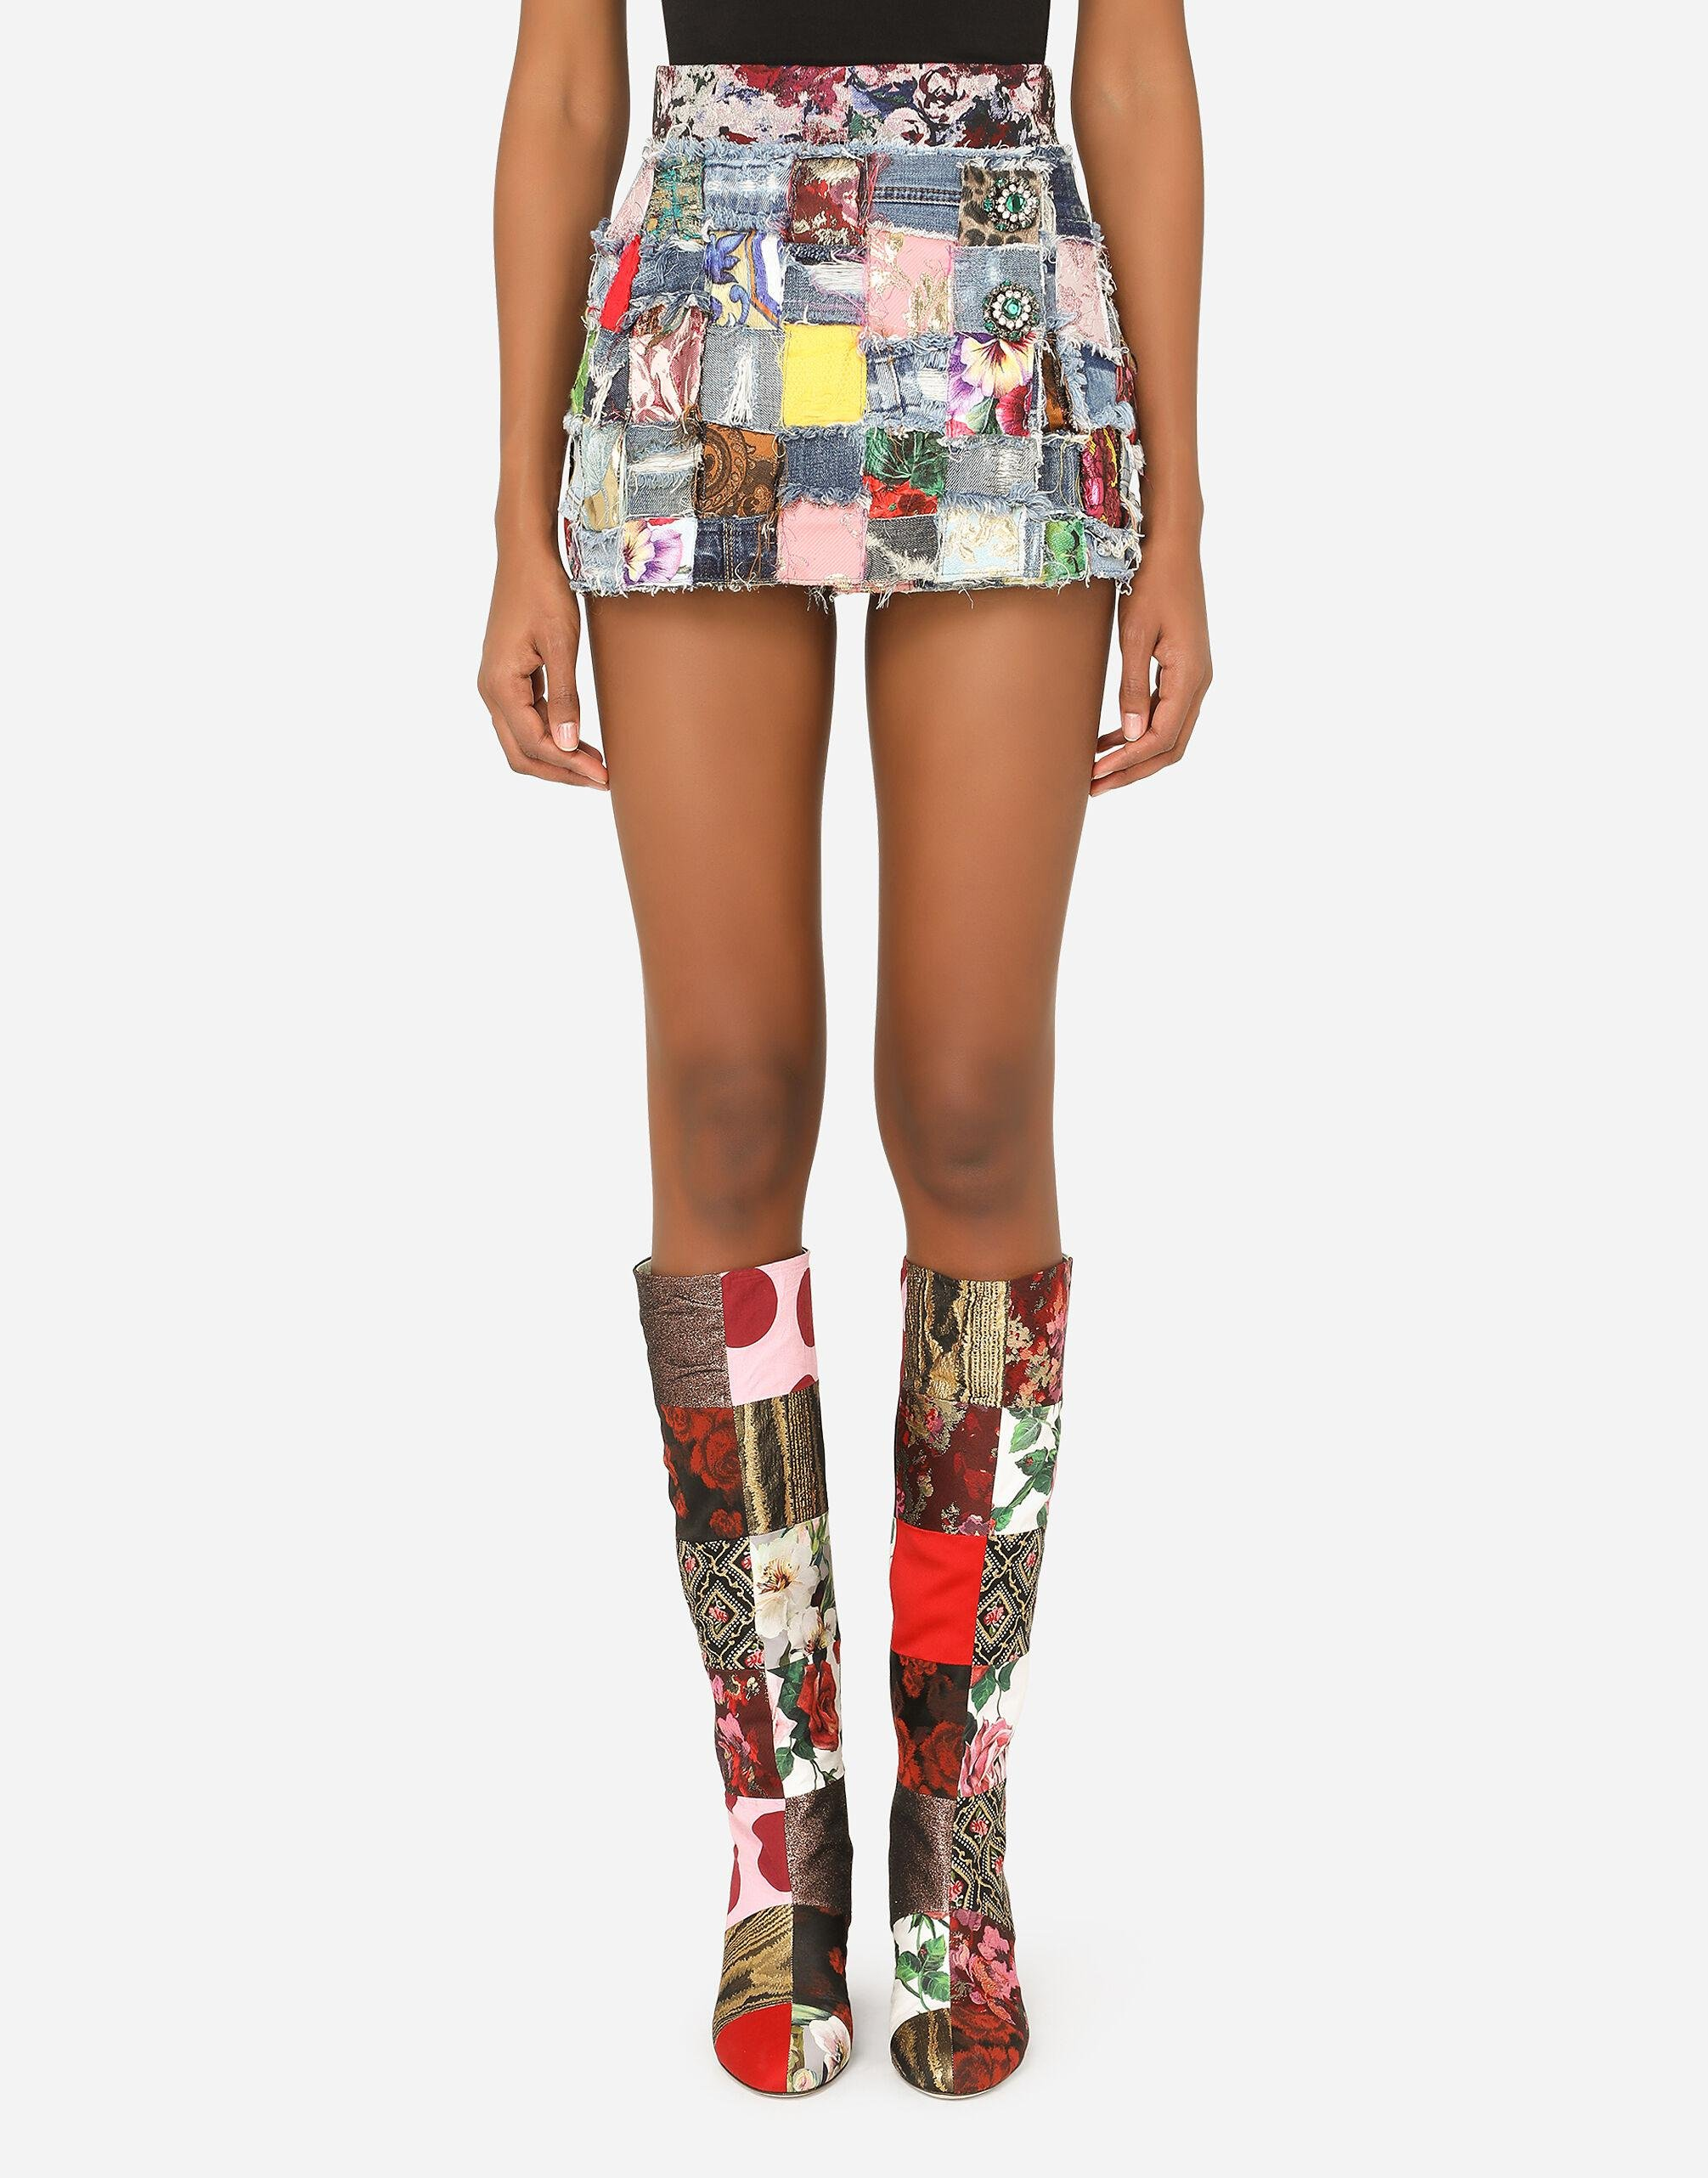 Denim miniskirt with interwoven patchwork detailing and bejeweled buttons